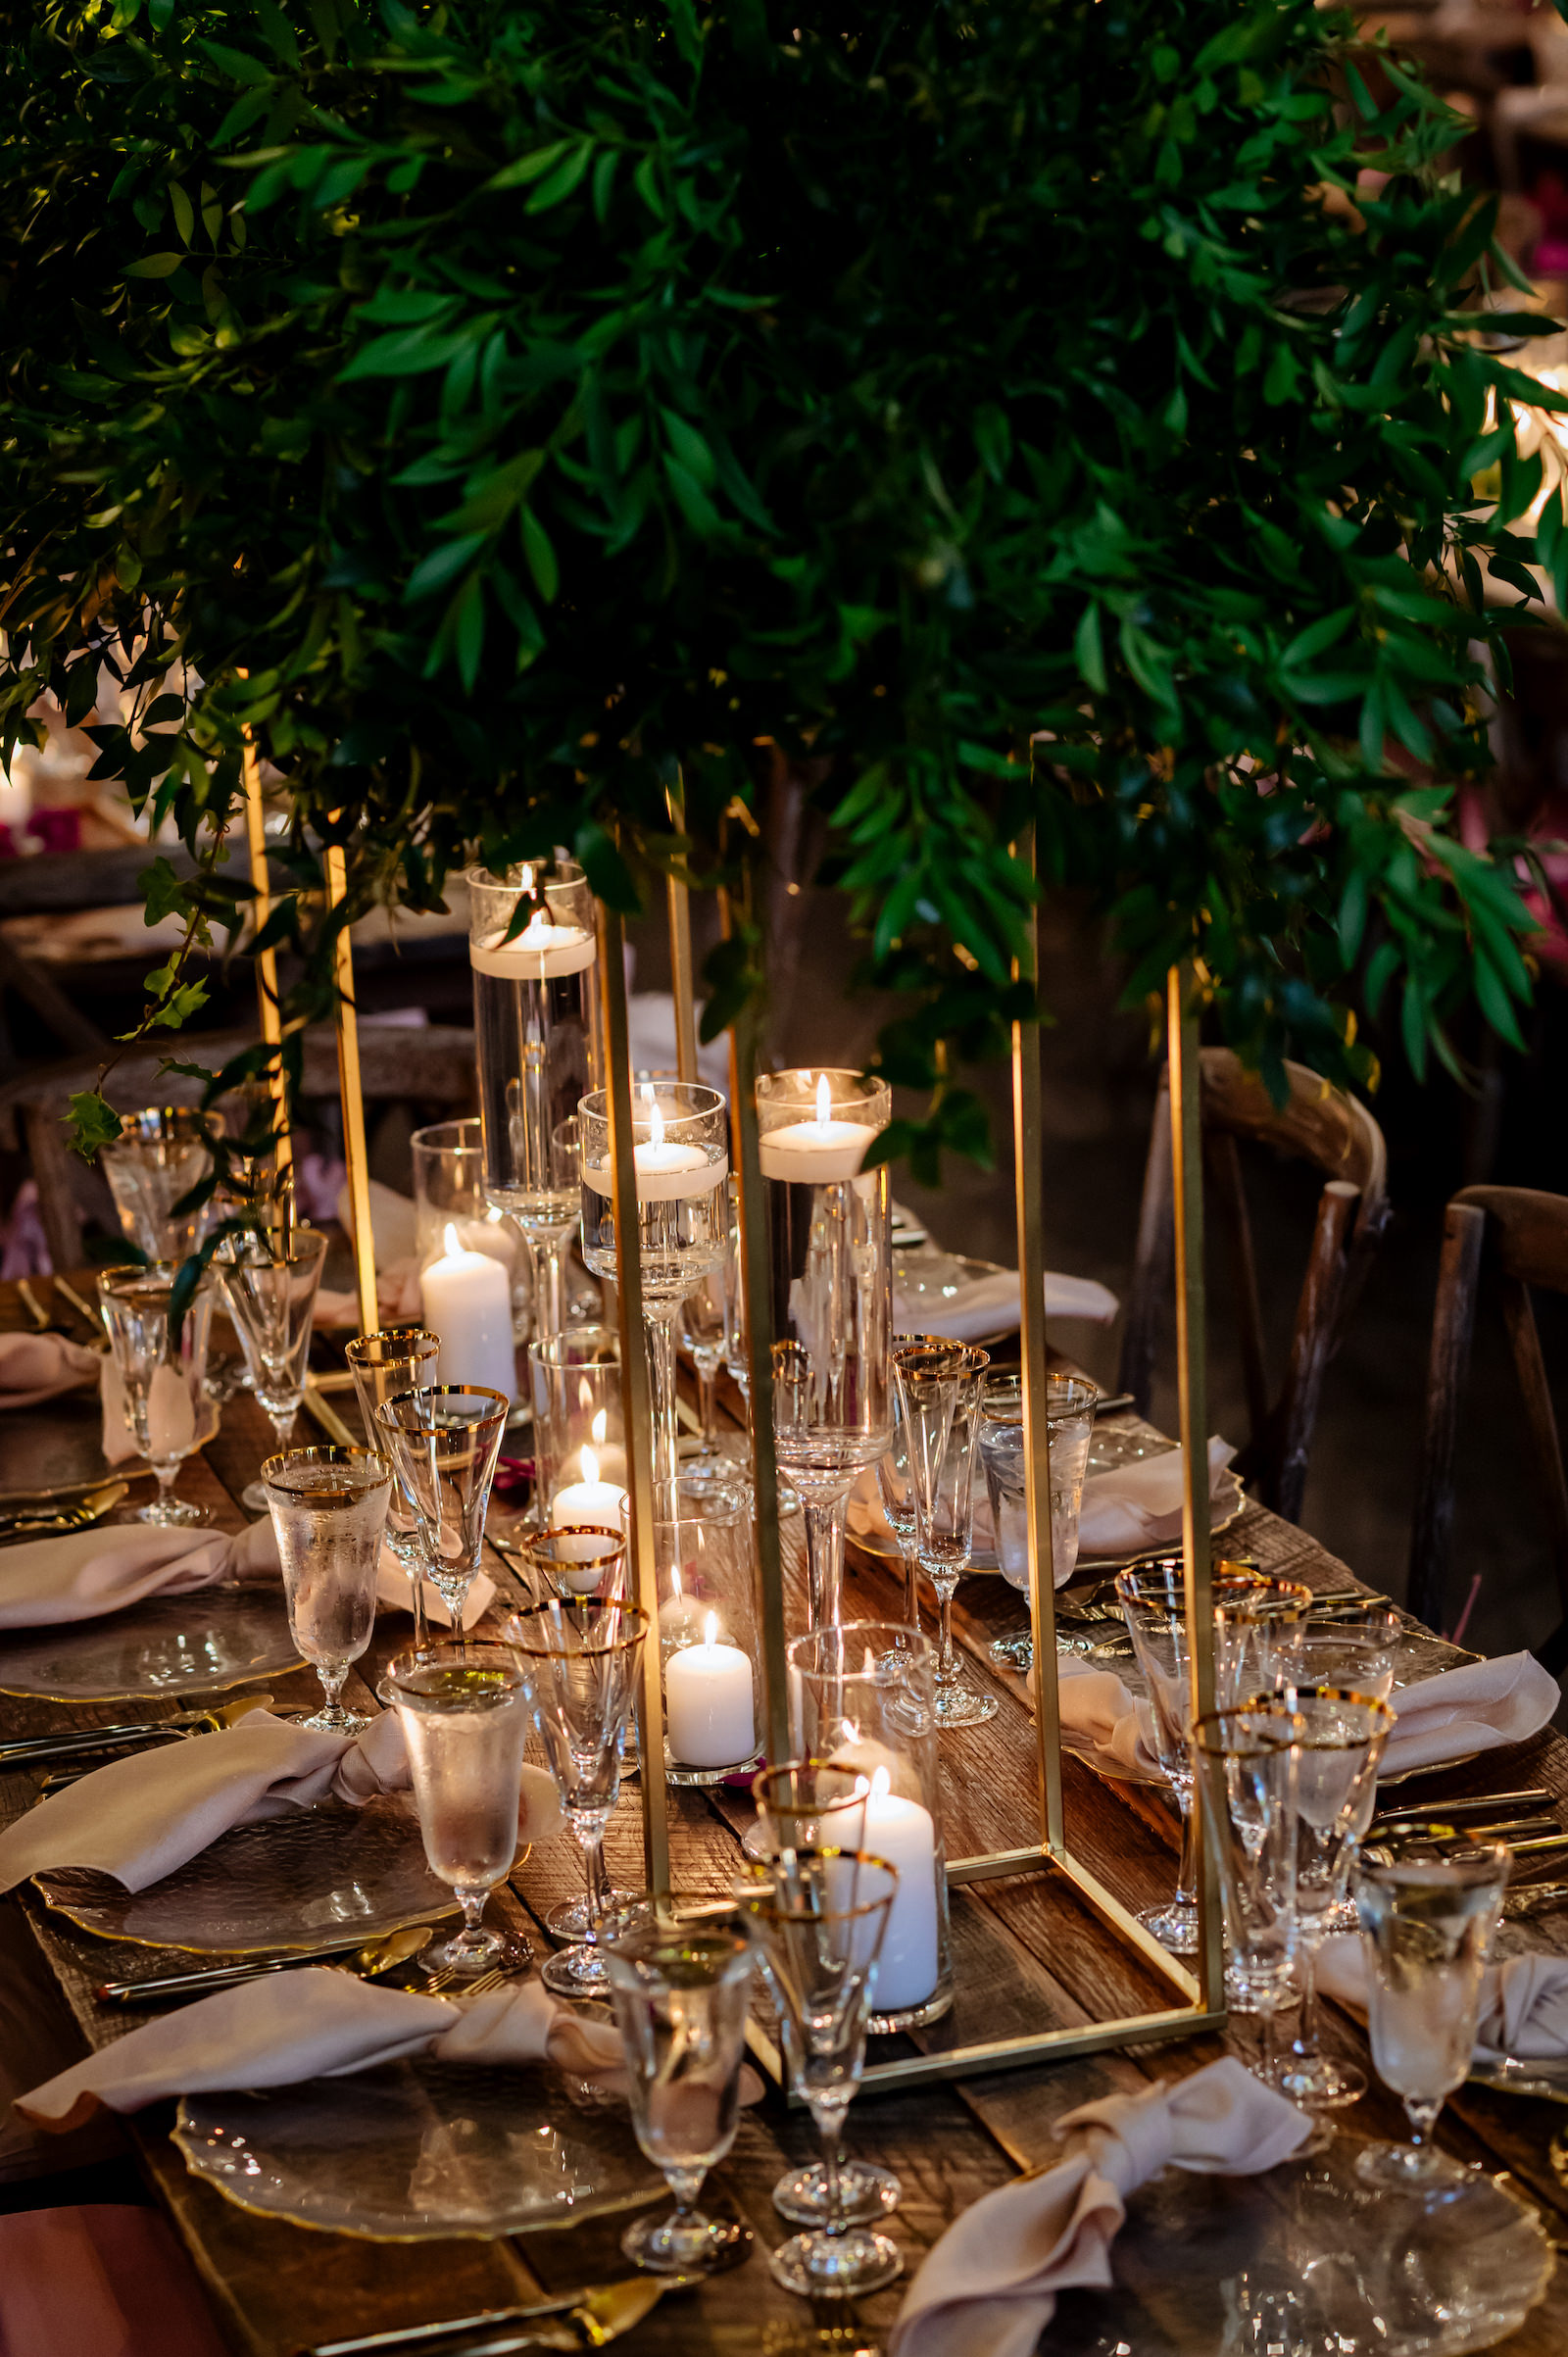 Wood Farm Feasting Tables with Tall Greenery Centerpieces and Candles   Tampa Wedding Reception Place Setting with Gold Rimmed Glassware and Gold Flatware with Gold Rim Glass Charger Plate by Kate Ryan Event Rentals